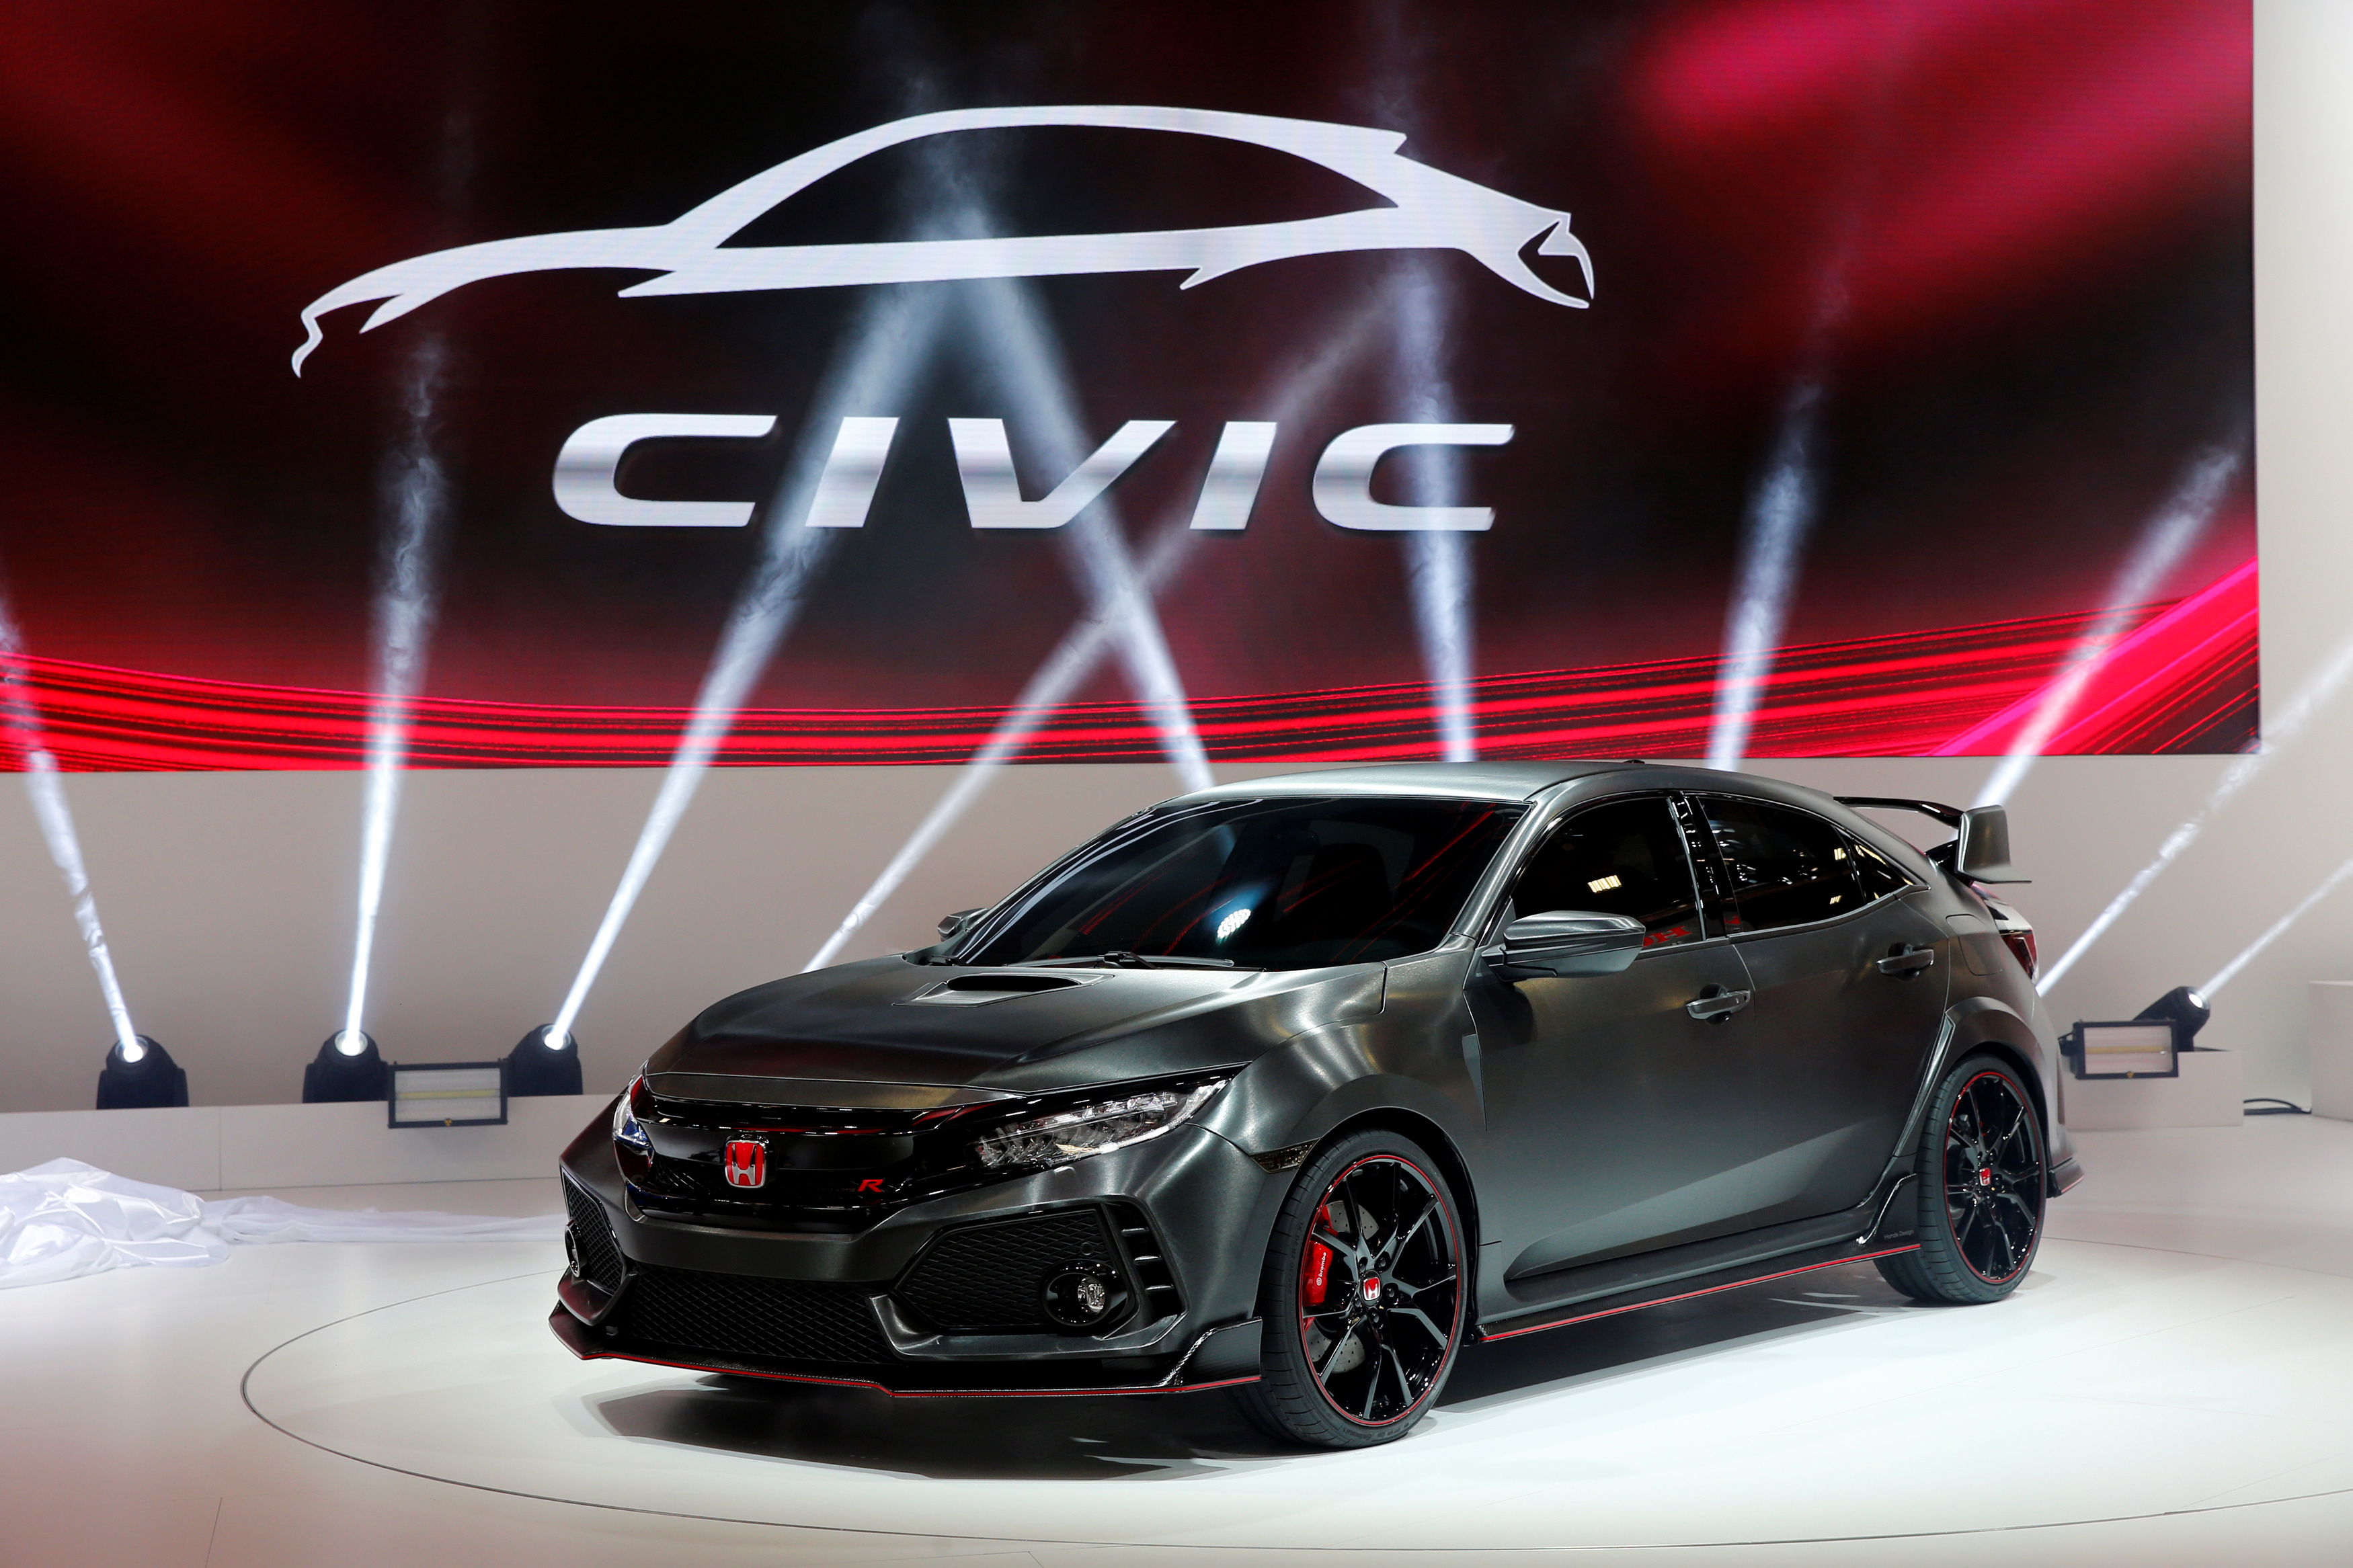 The Honda Civic Type R Prototype is displayed on media day at the Paris auto show, in Paris